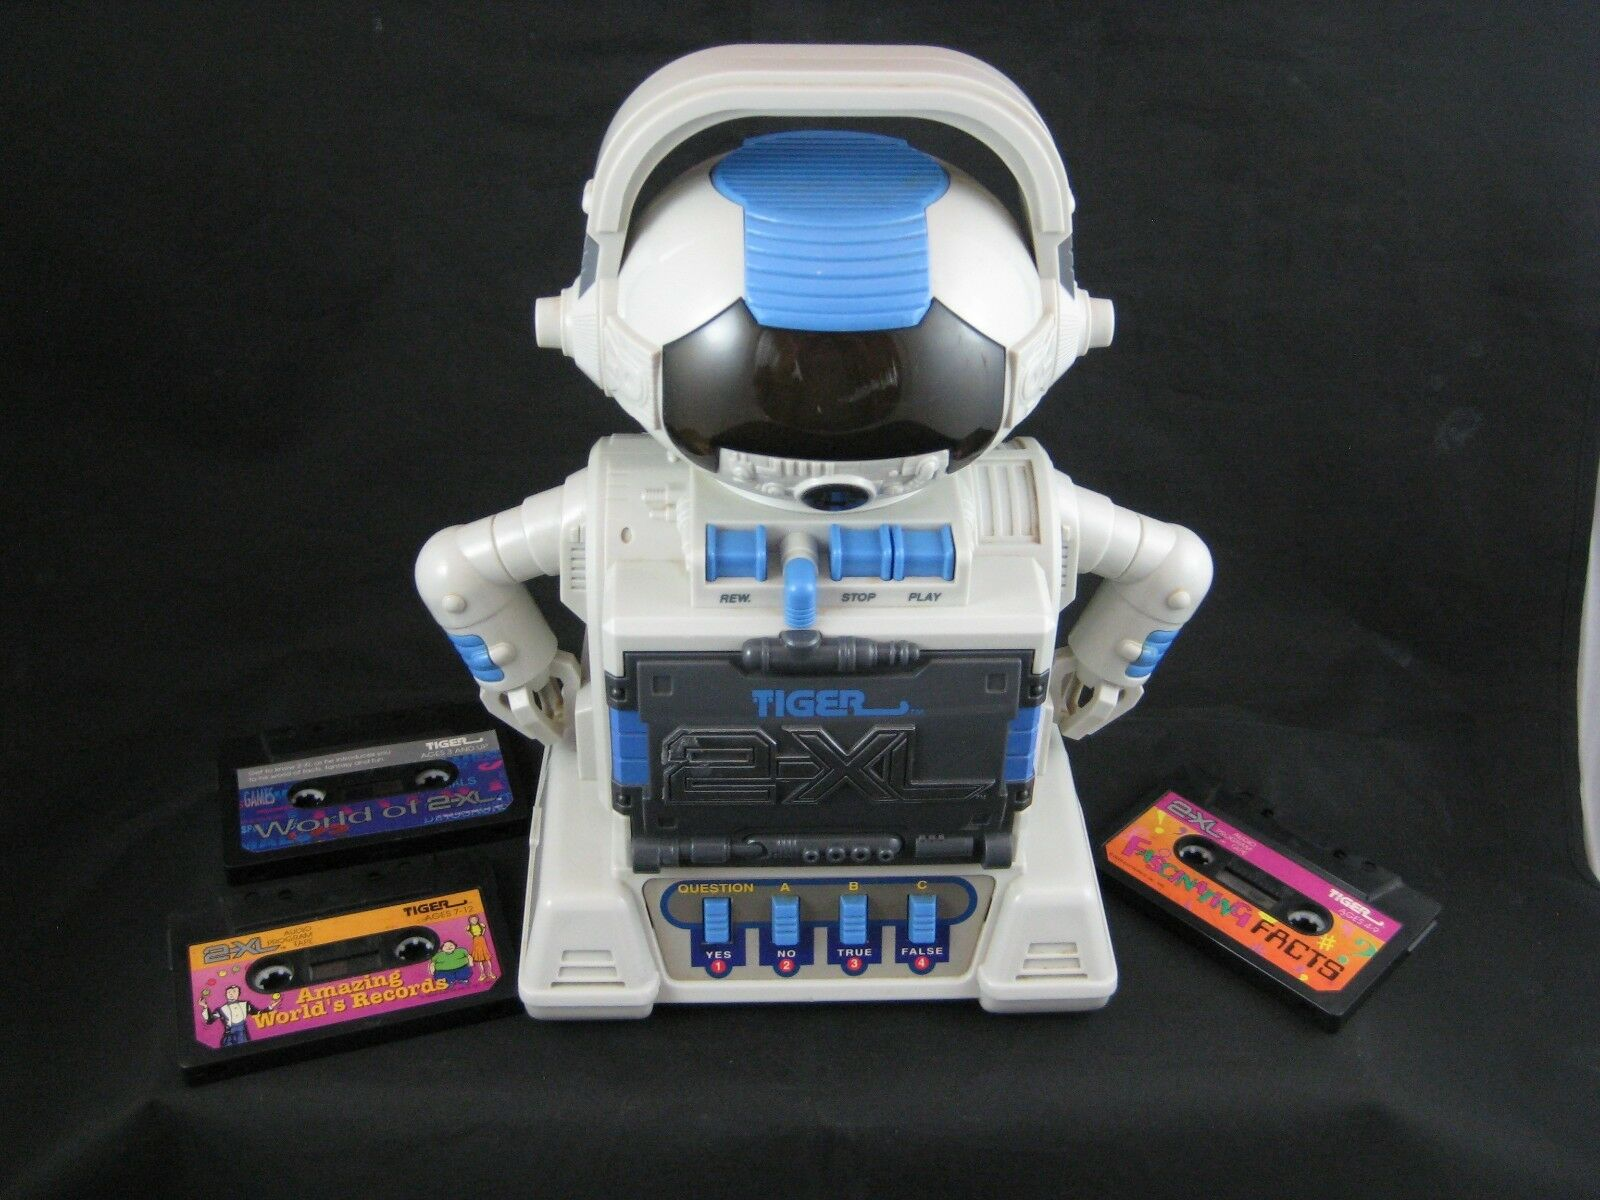 1992 TIGER 2-XL Talking Robot Cassette Player Interactive Educational Toy/Tapes